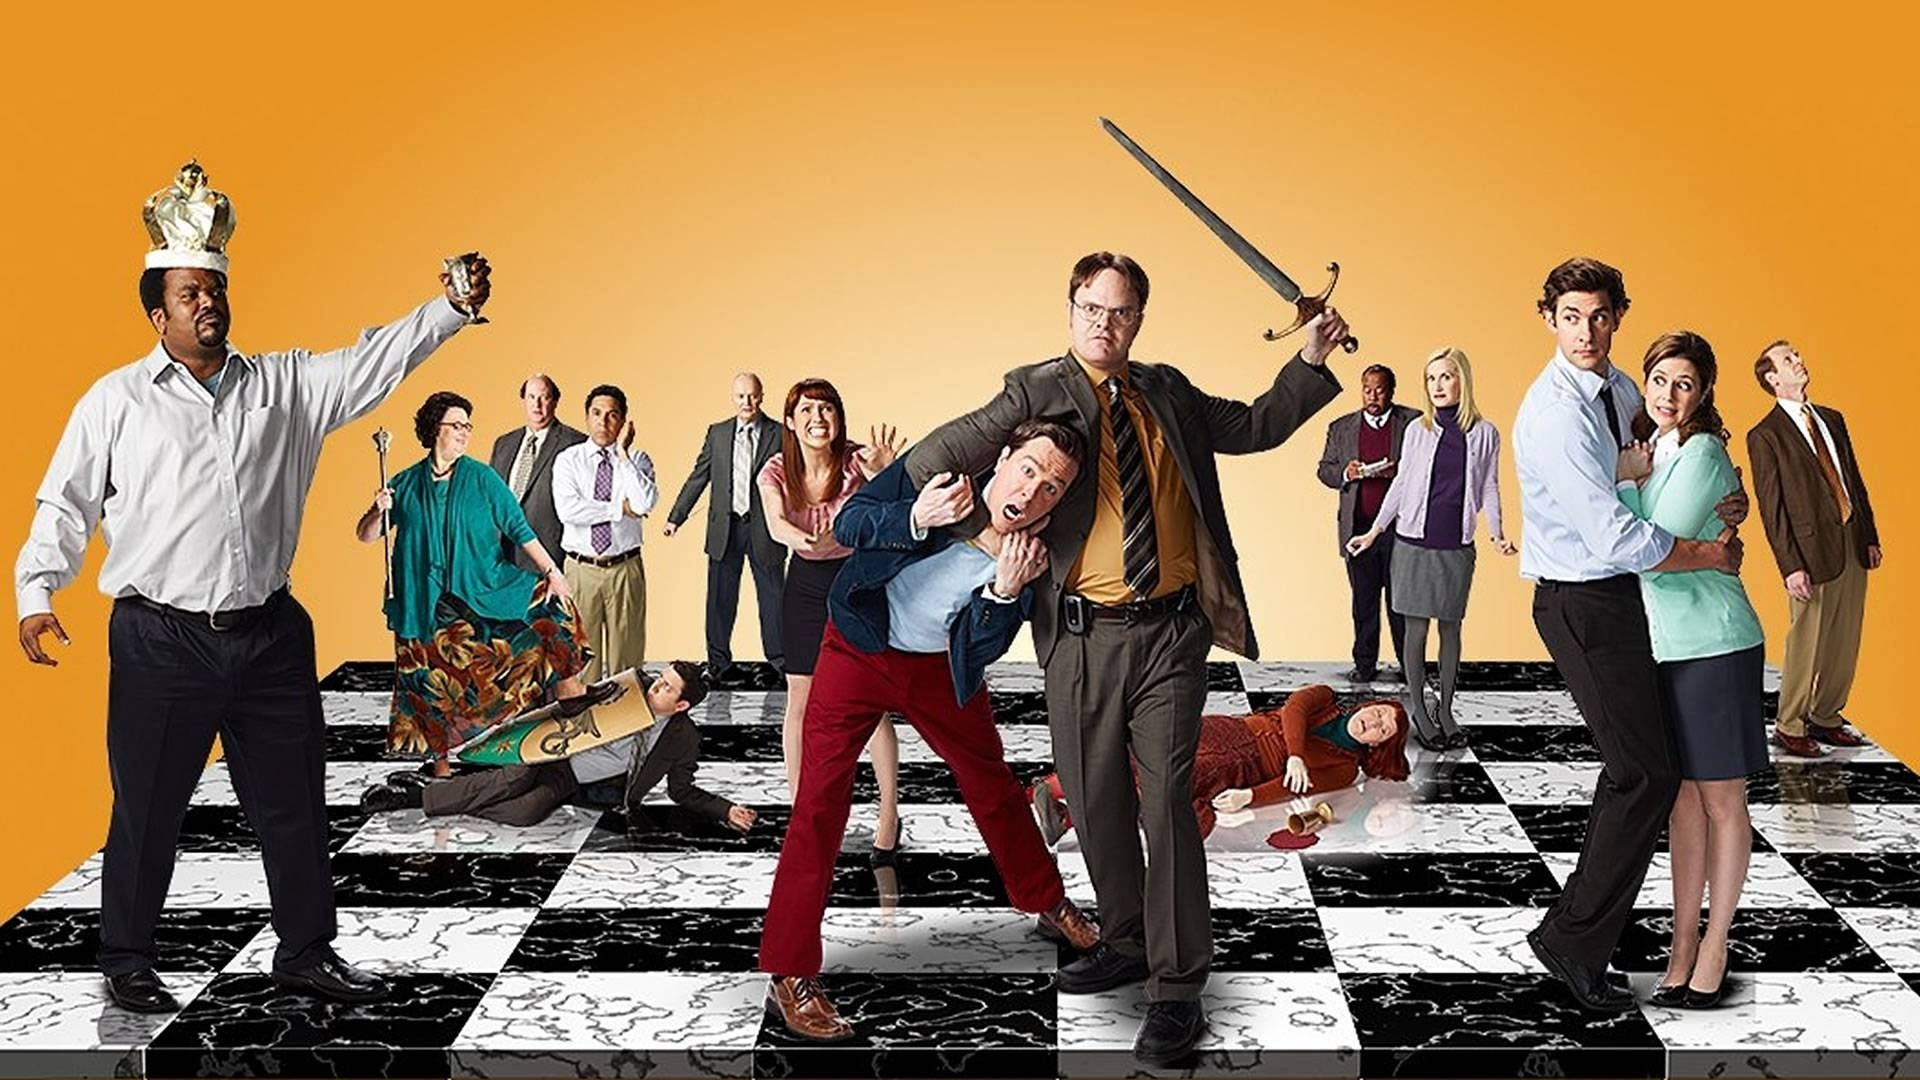 10 Top The Office Wallpaper 1920x1080 Full Hd 1920 1080 For Pc Desktop The Office Characters The Office Seasons The Office Season 9